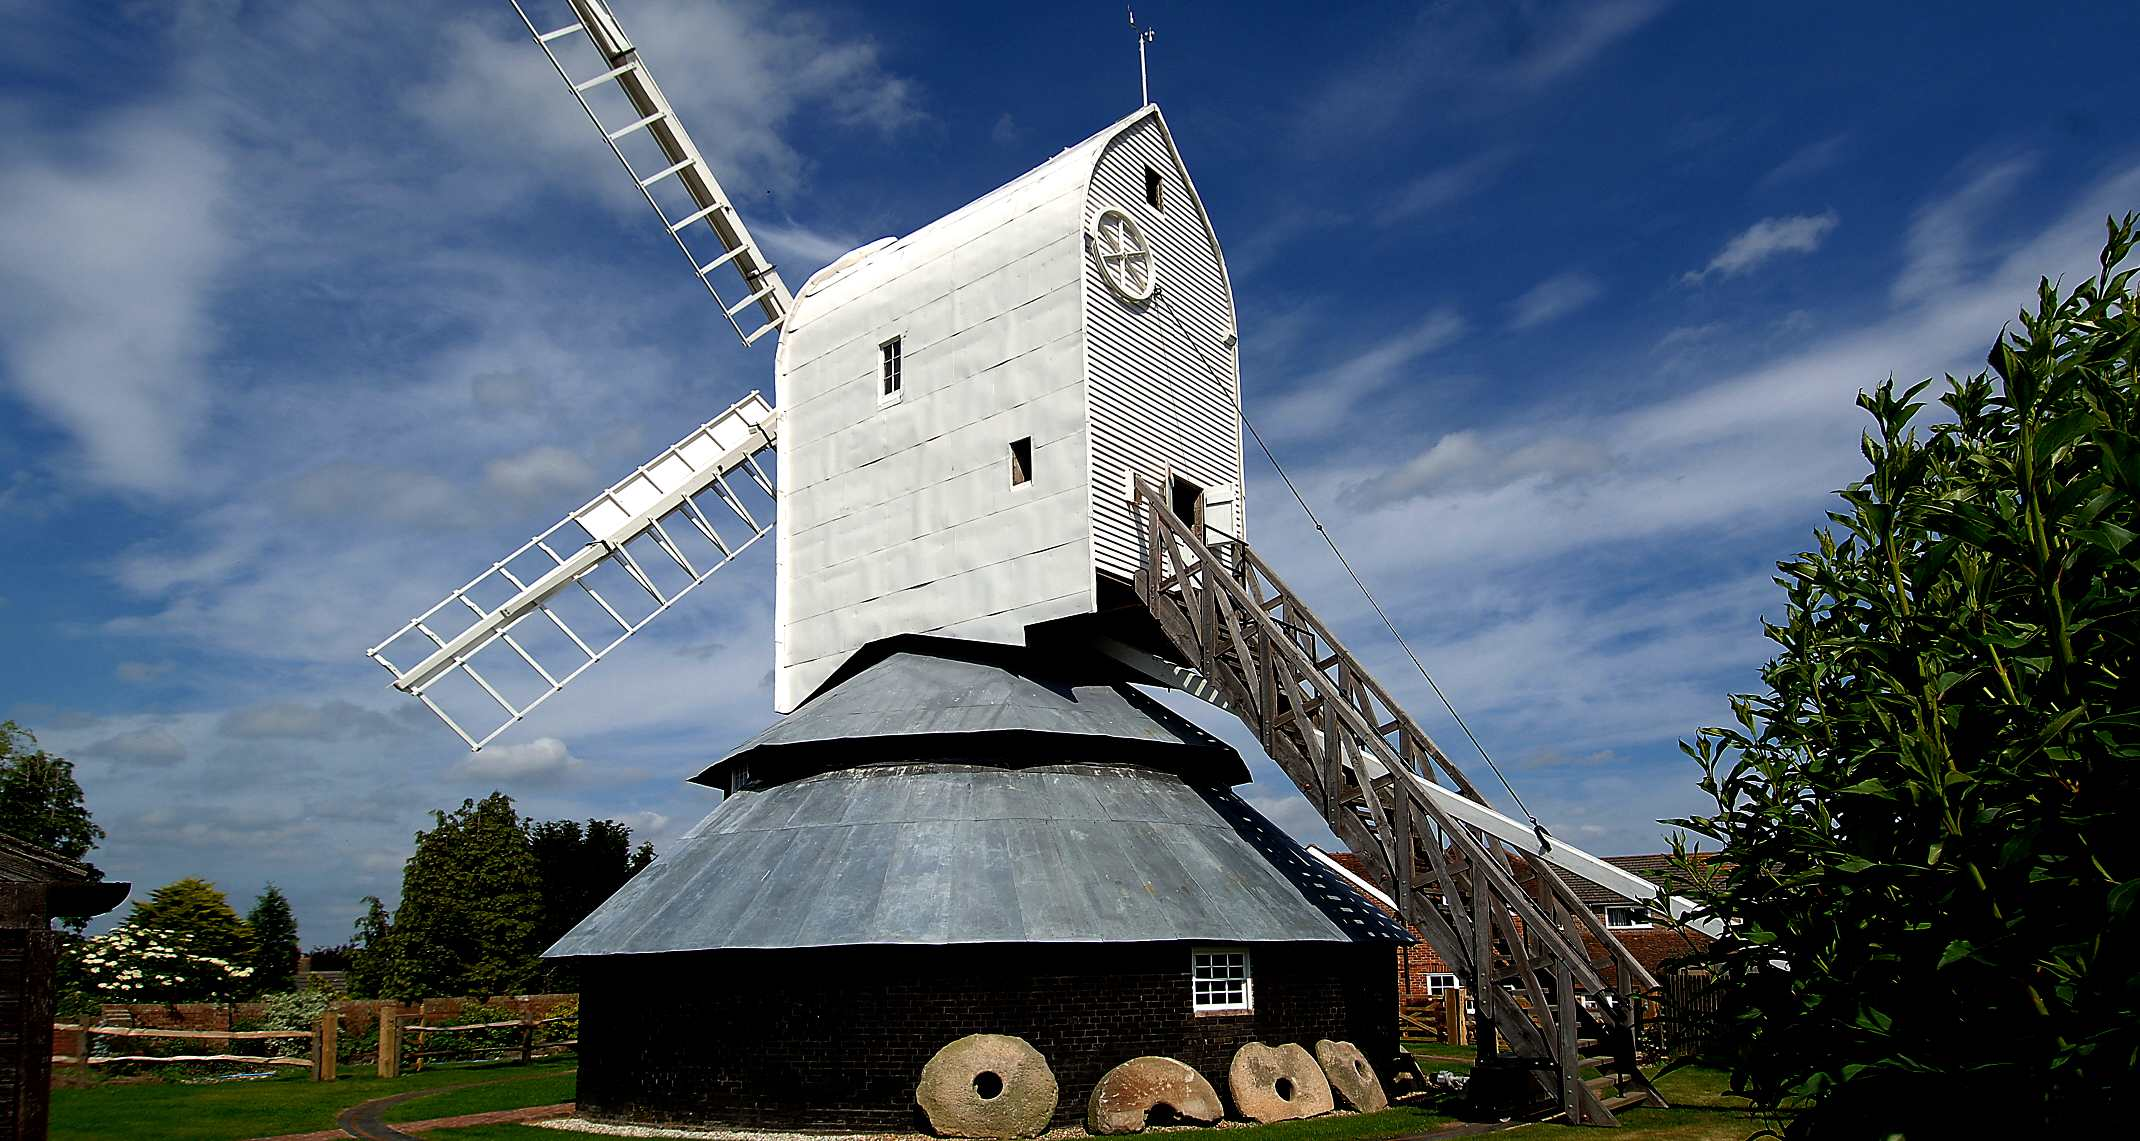 The tallest post mill in England is at Windmill Hill within the Wealden District